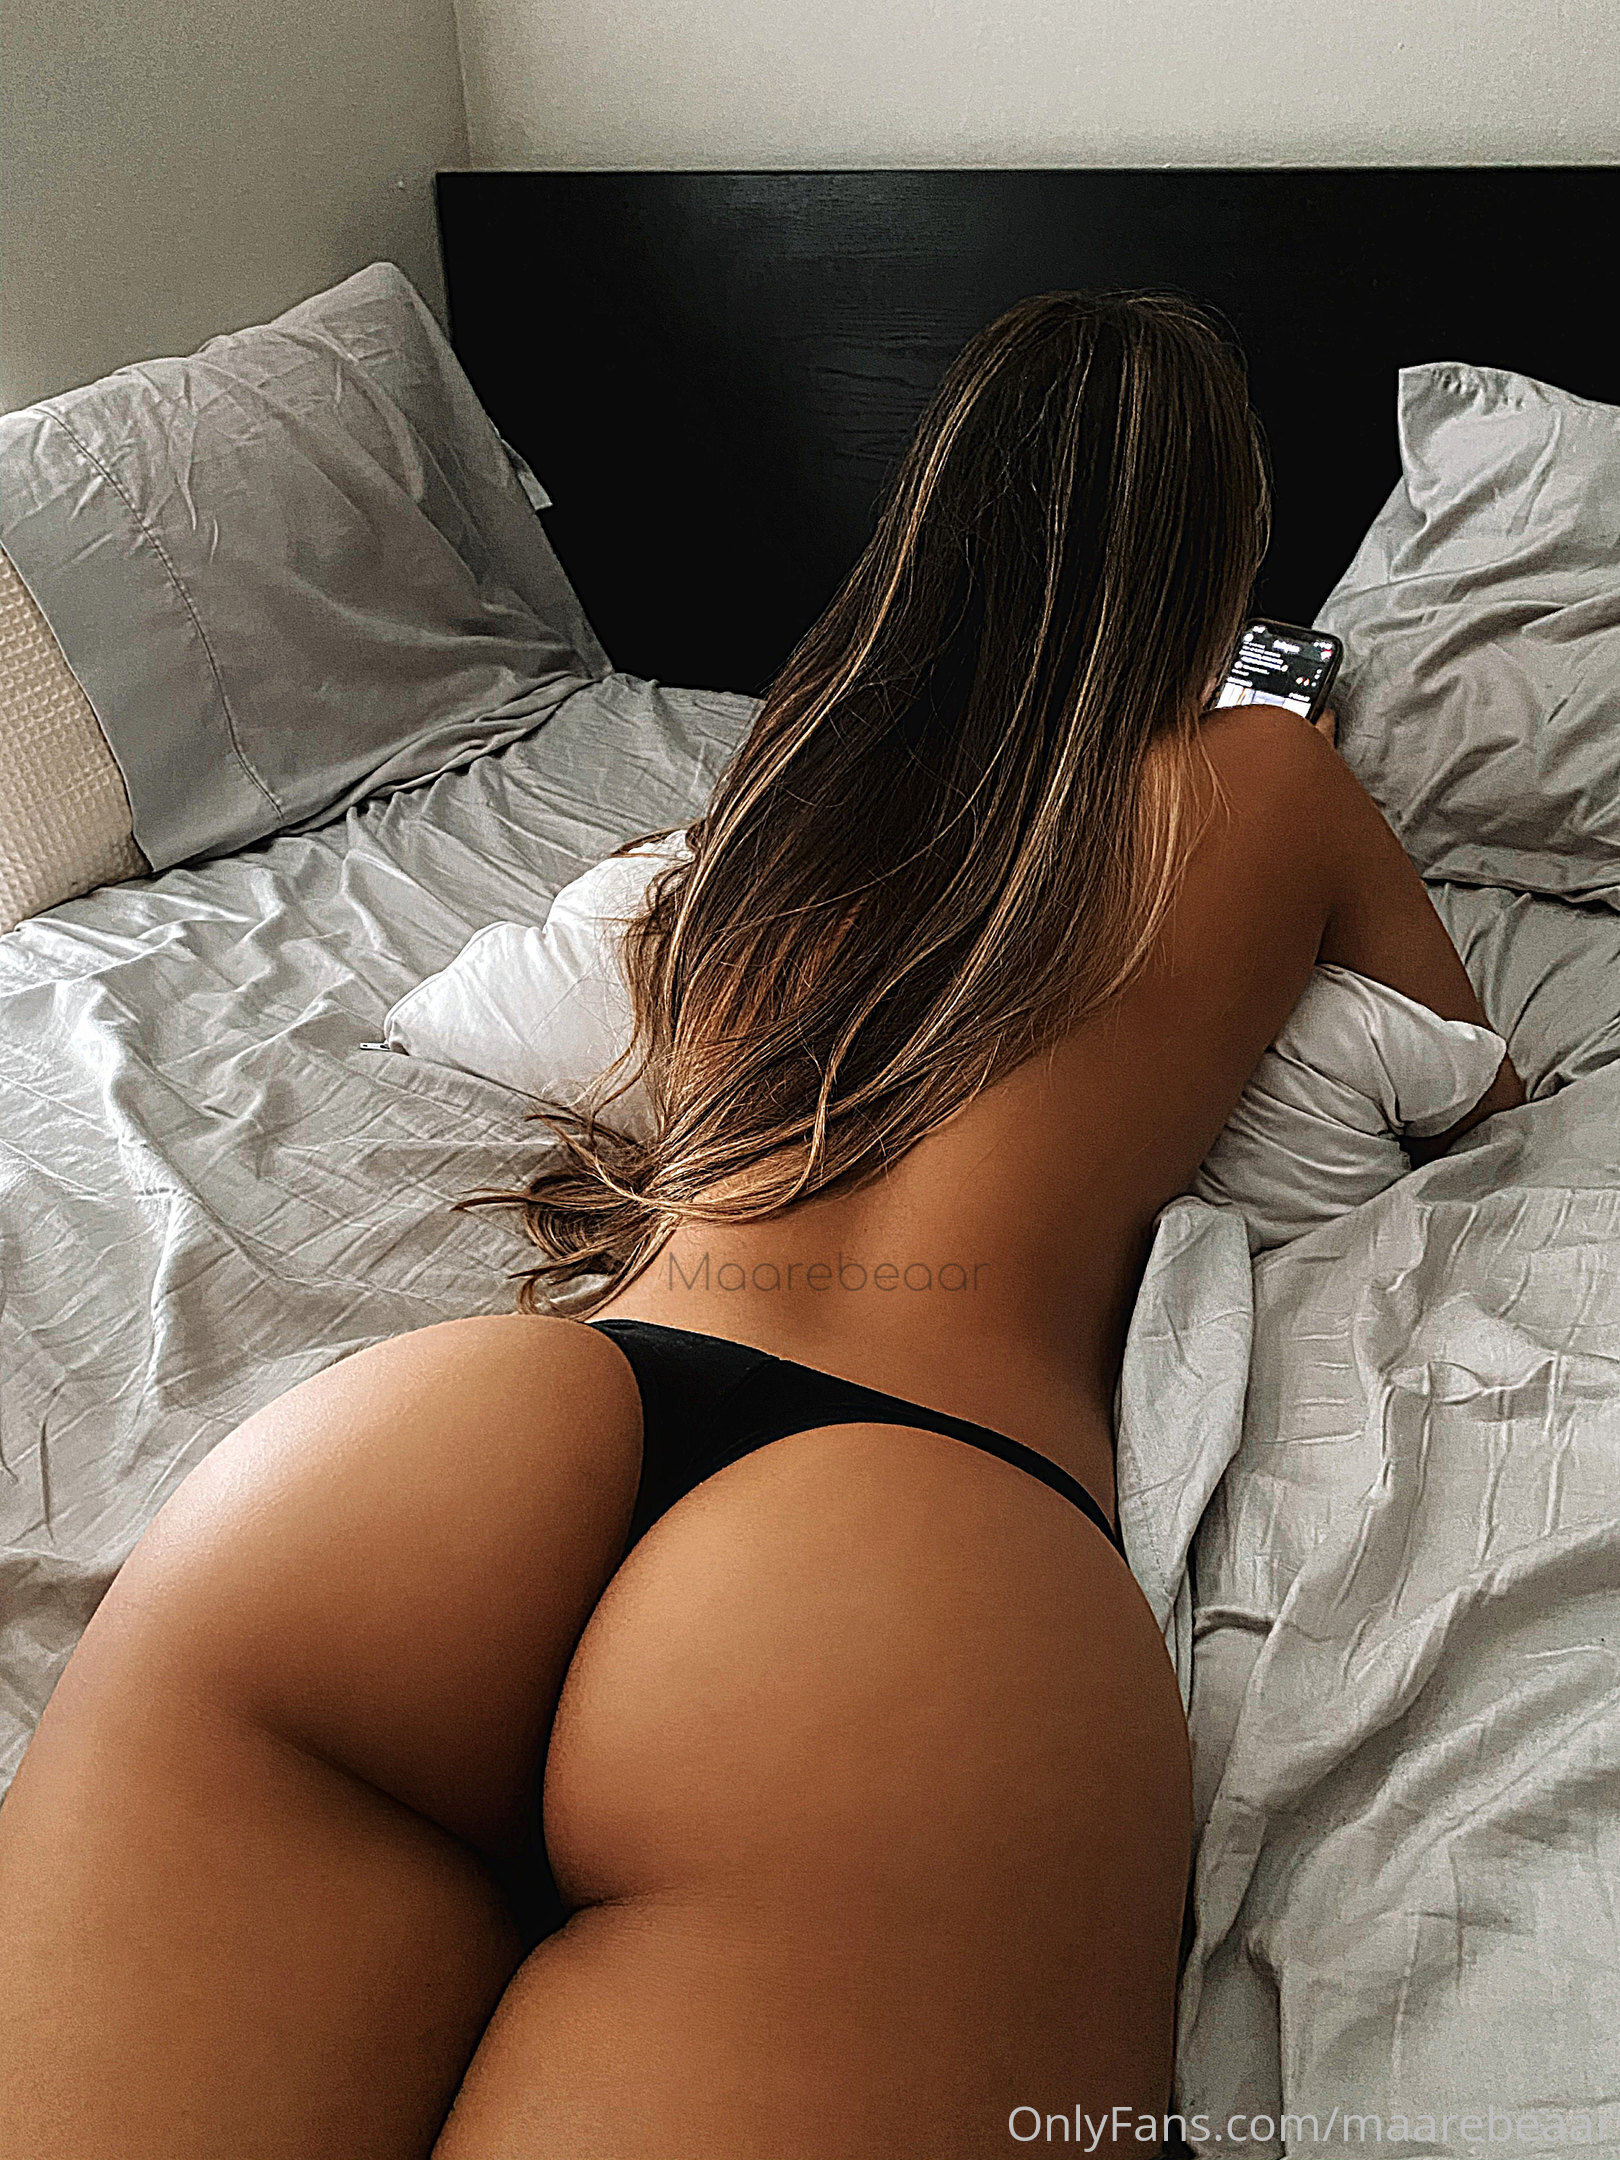 Mariana Morais Onlyfans 0028